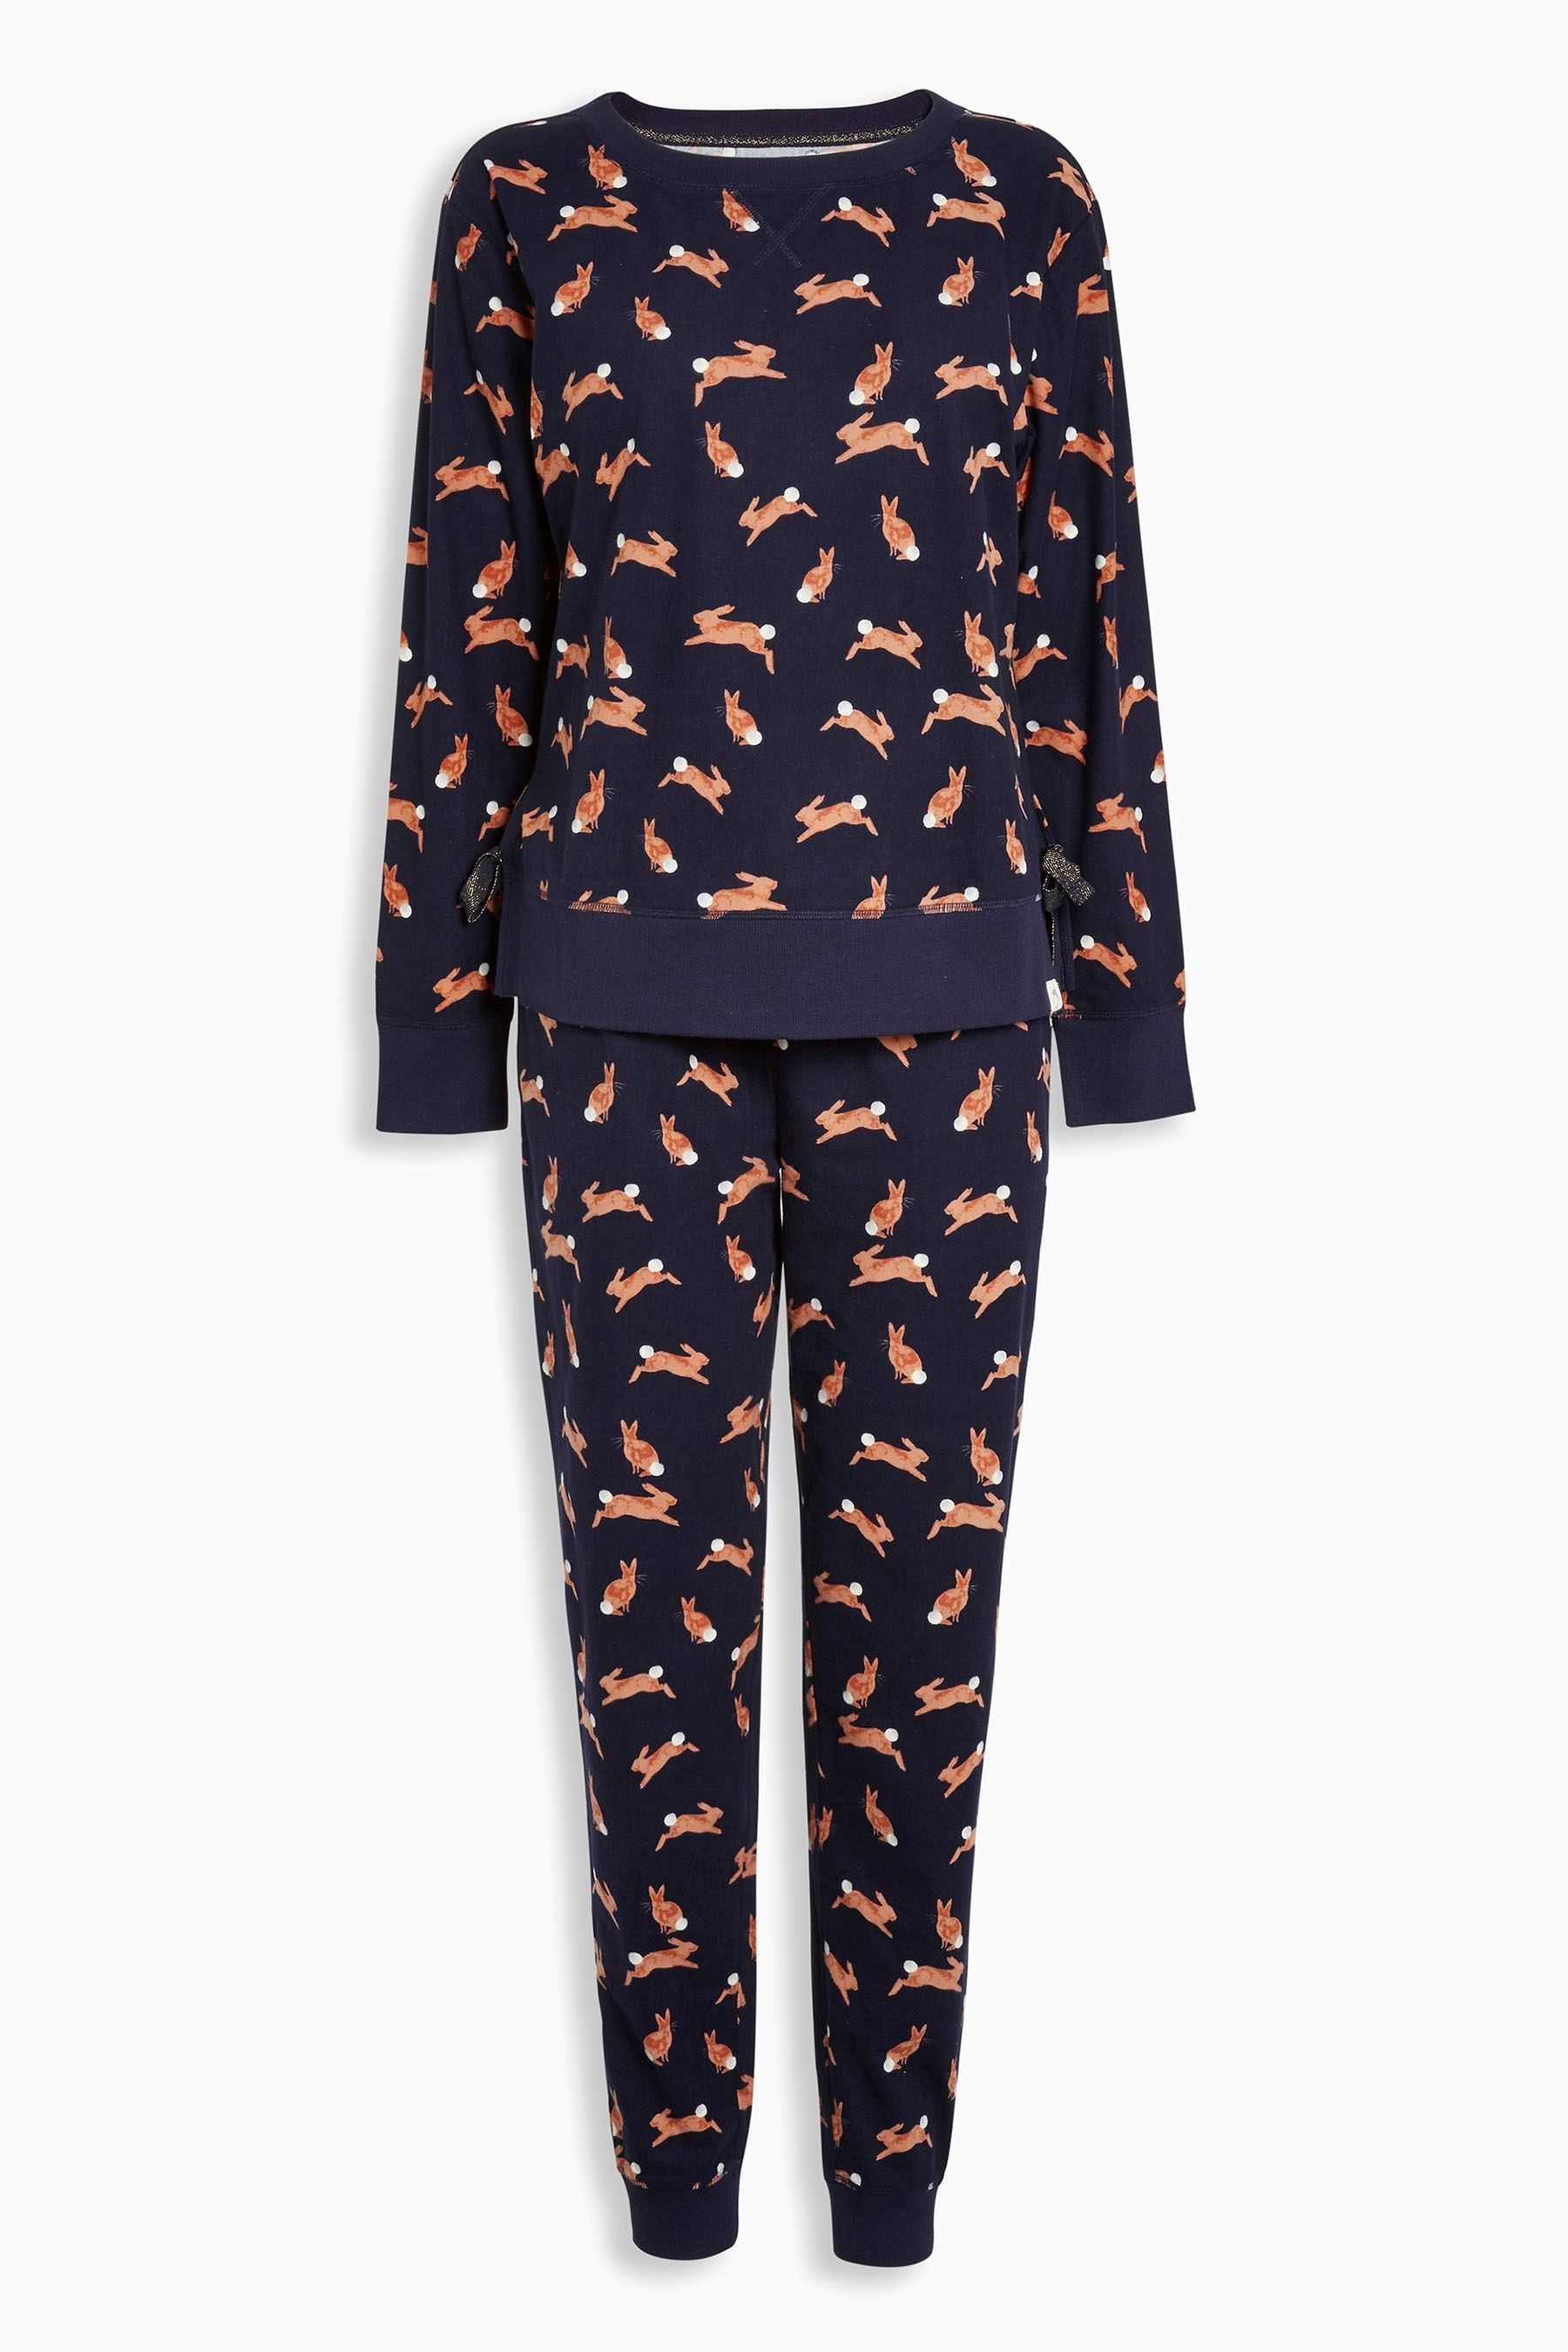 ab6a550bb1 Buy Navy Bunny Print Cosy Pyjamas from the Next UK online shop ...